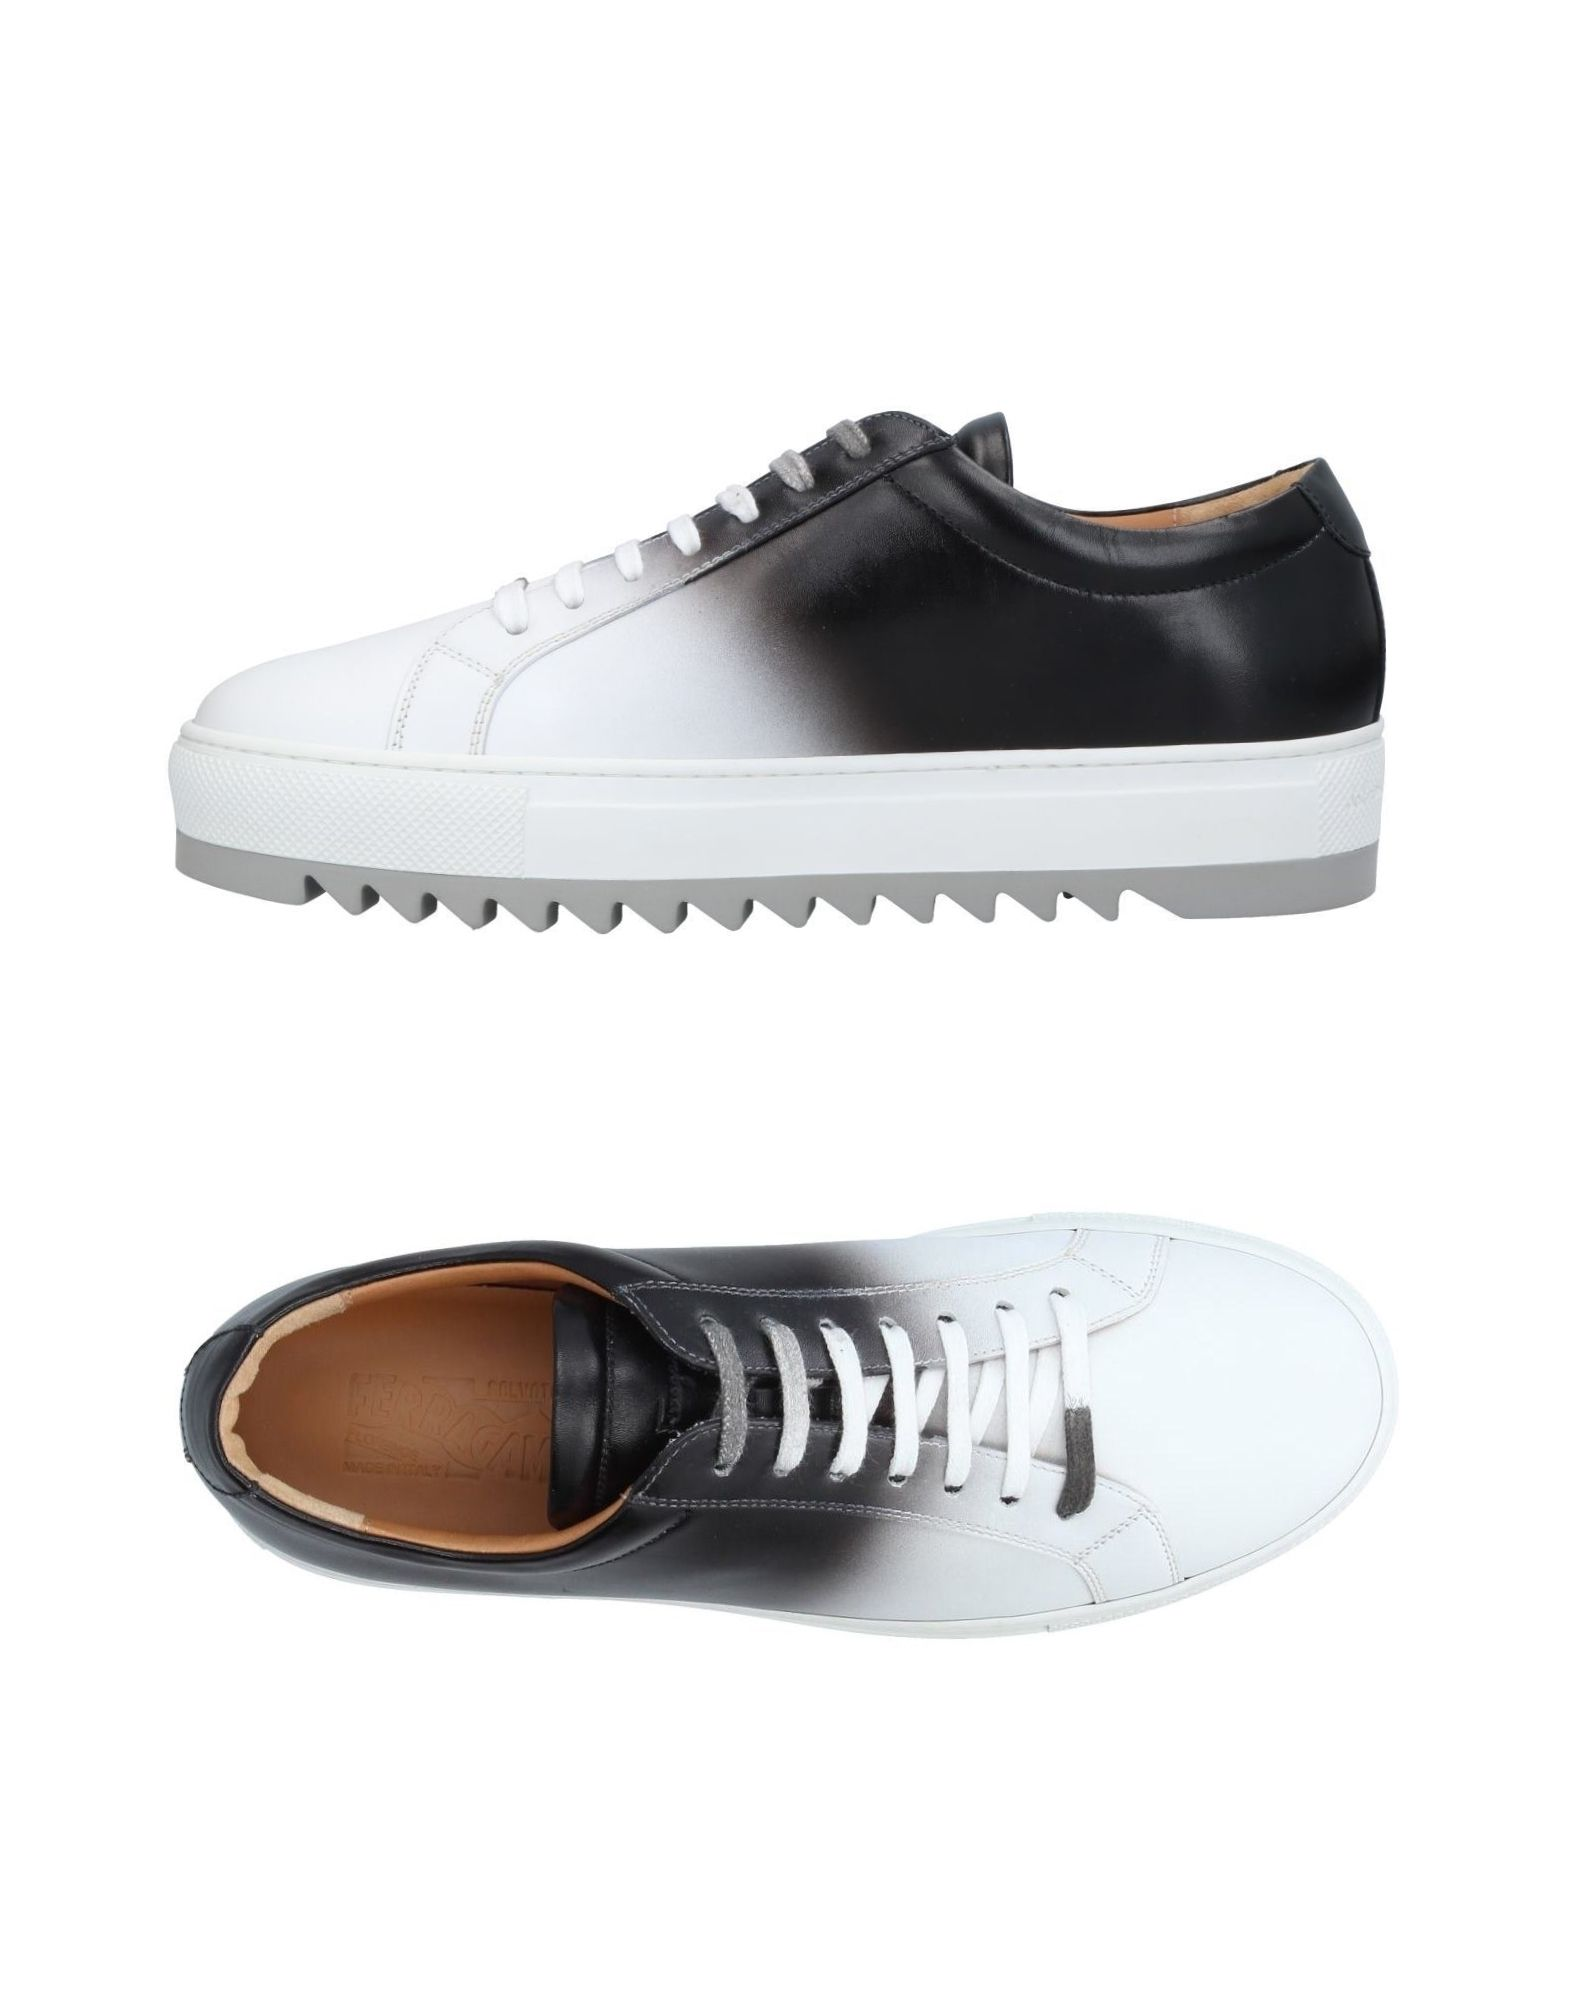 Salvatore Ferragamo Sneakers - Men Salvatore Ferragamo Sneakers online 11397802VO on  Canada - 11397802VO online 9f2a8c